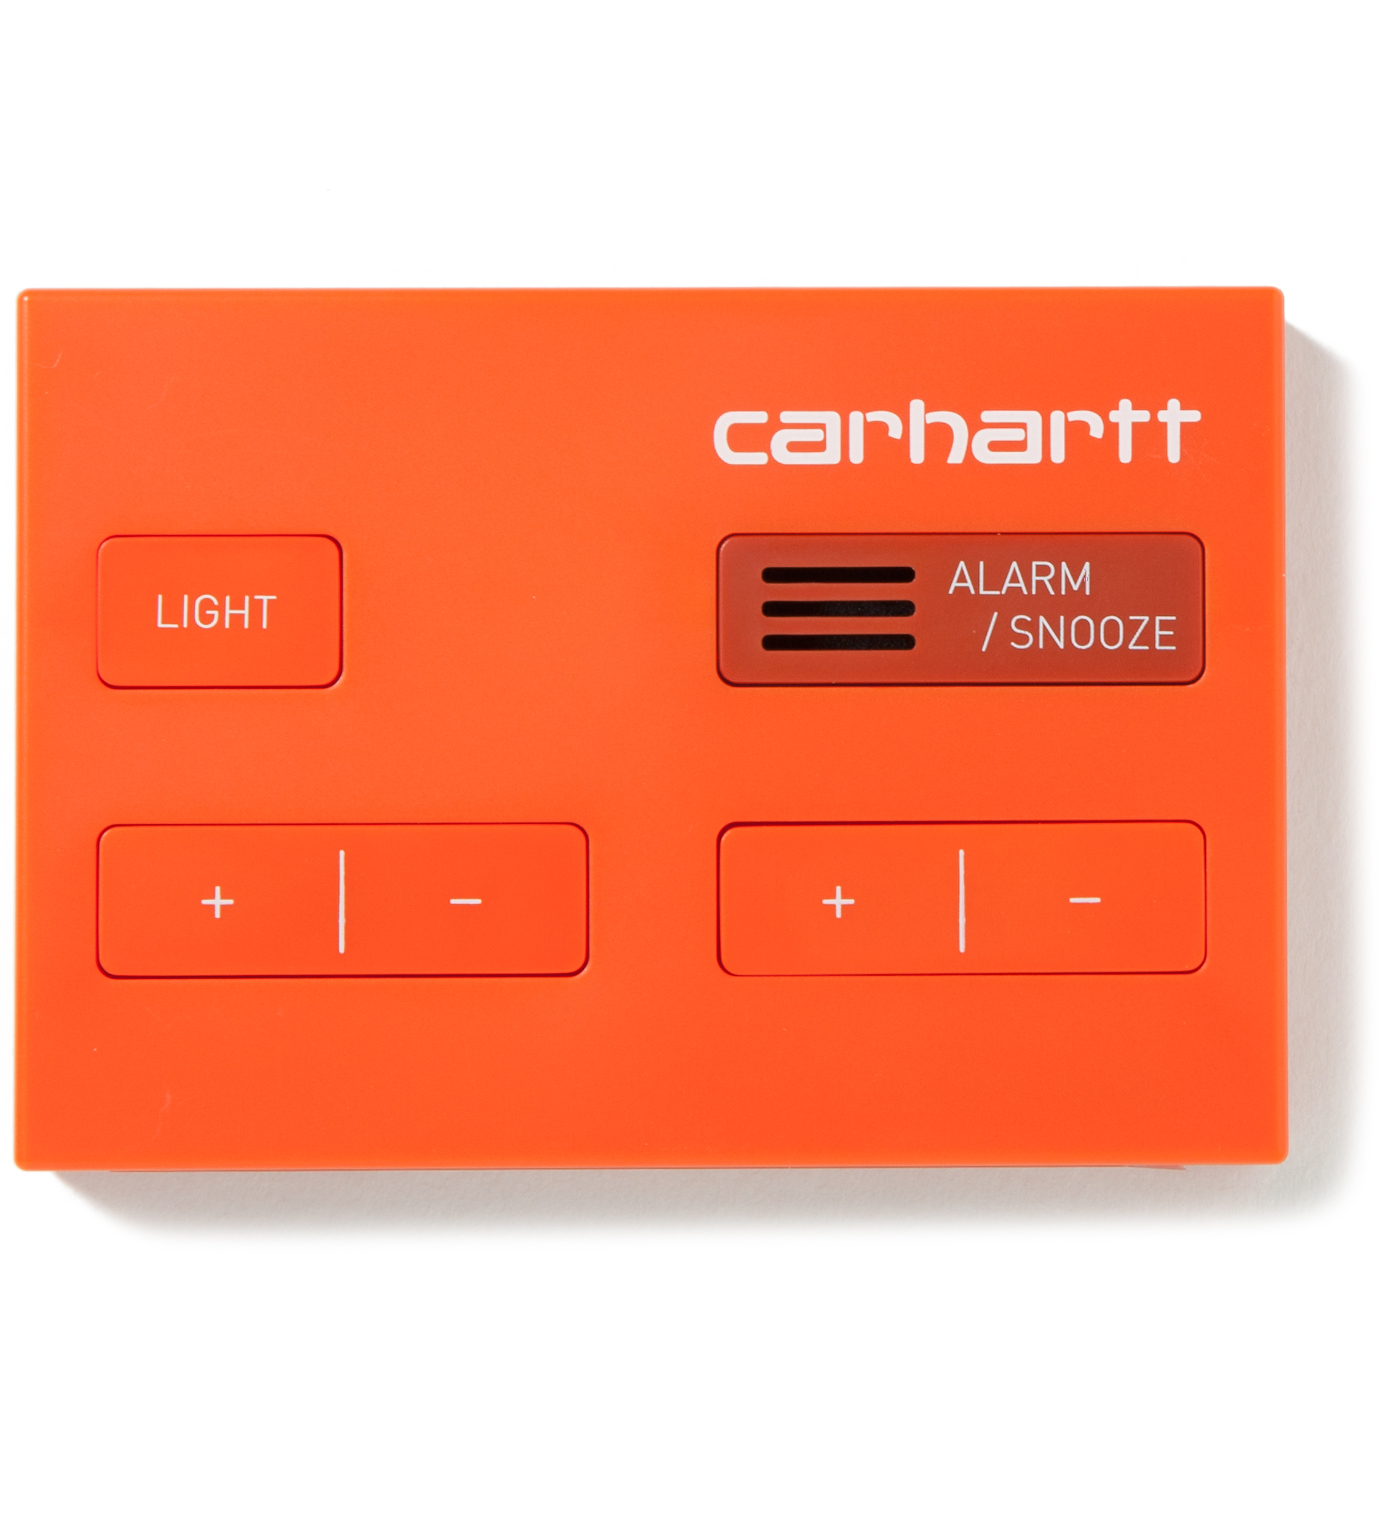 Carhartt Work In Progress Red Jetlag Travel Alarm Clock